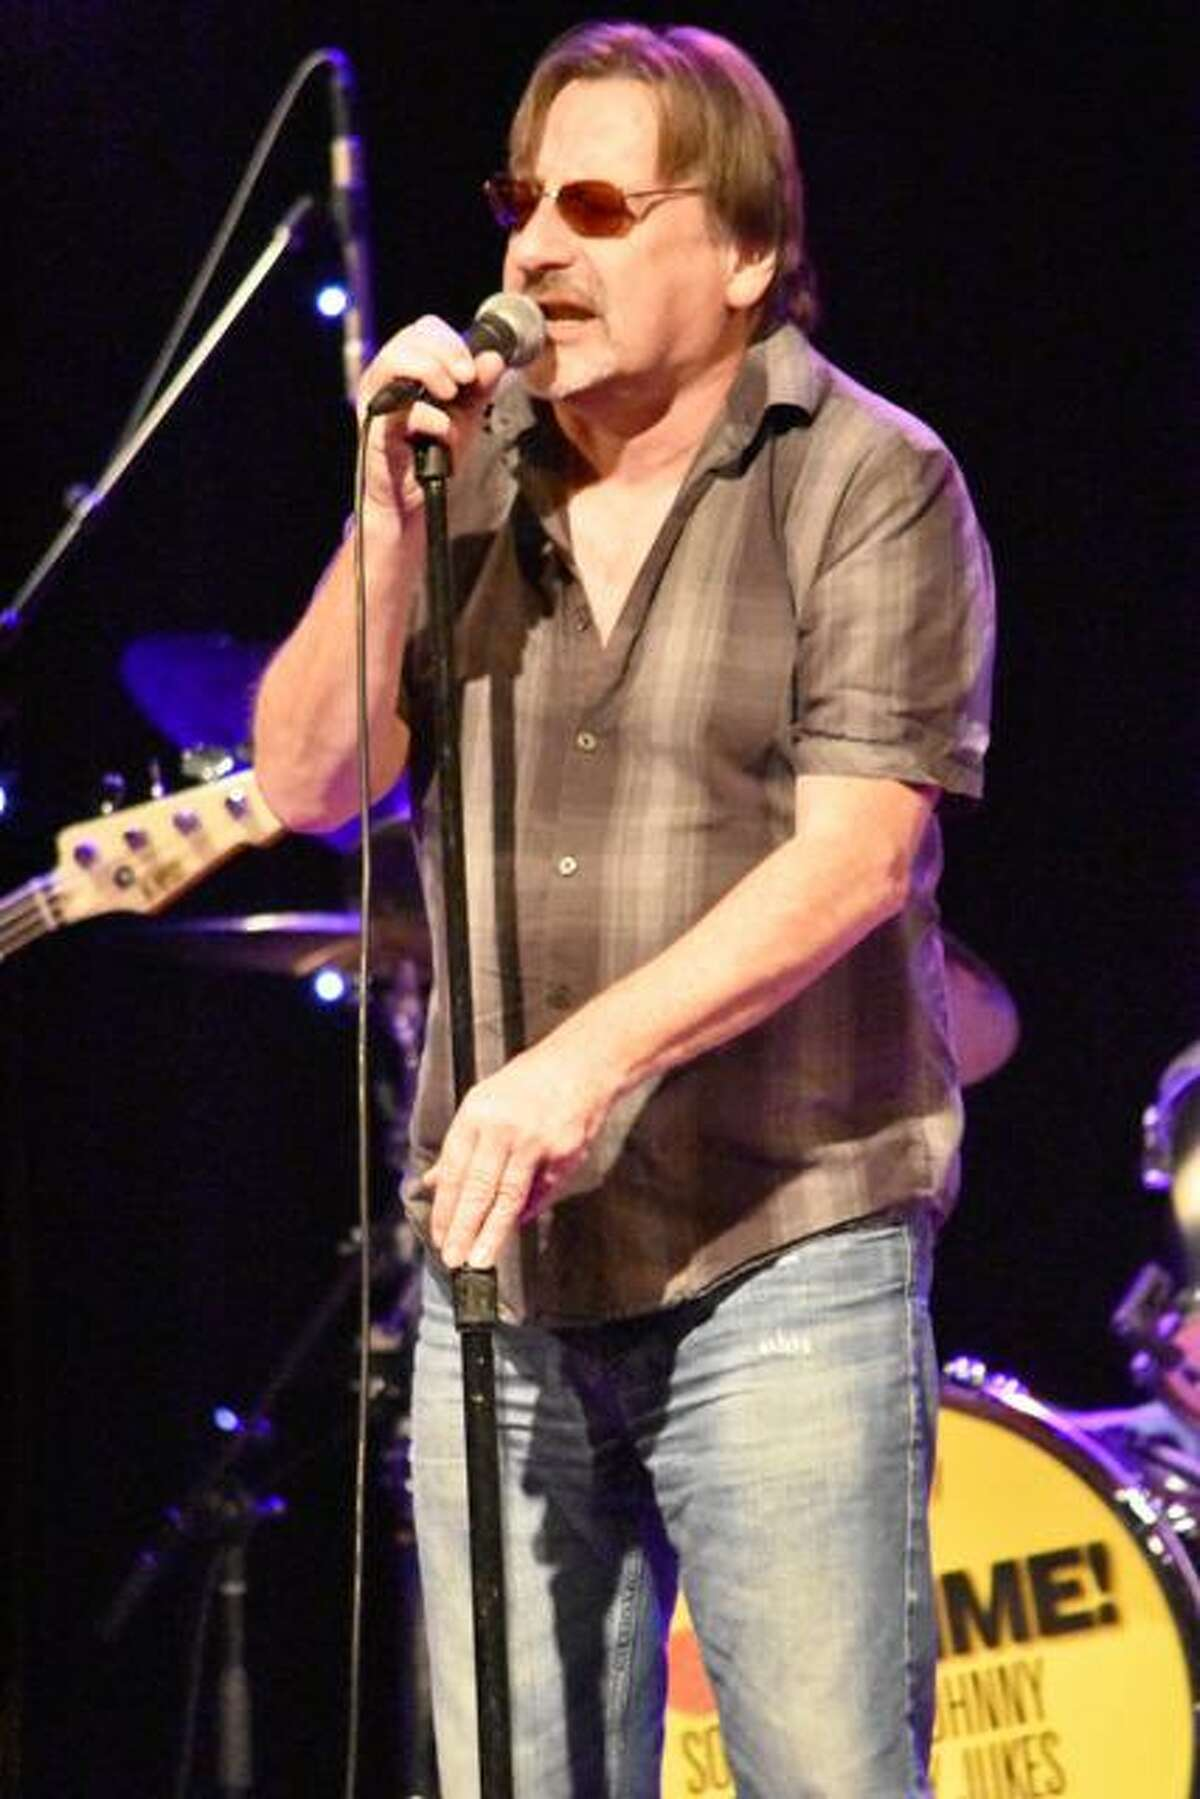 Southside Johnny and the Asbury Jukes are playing in Morris.